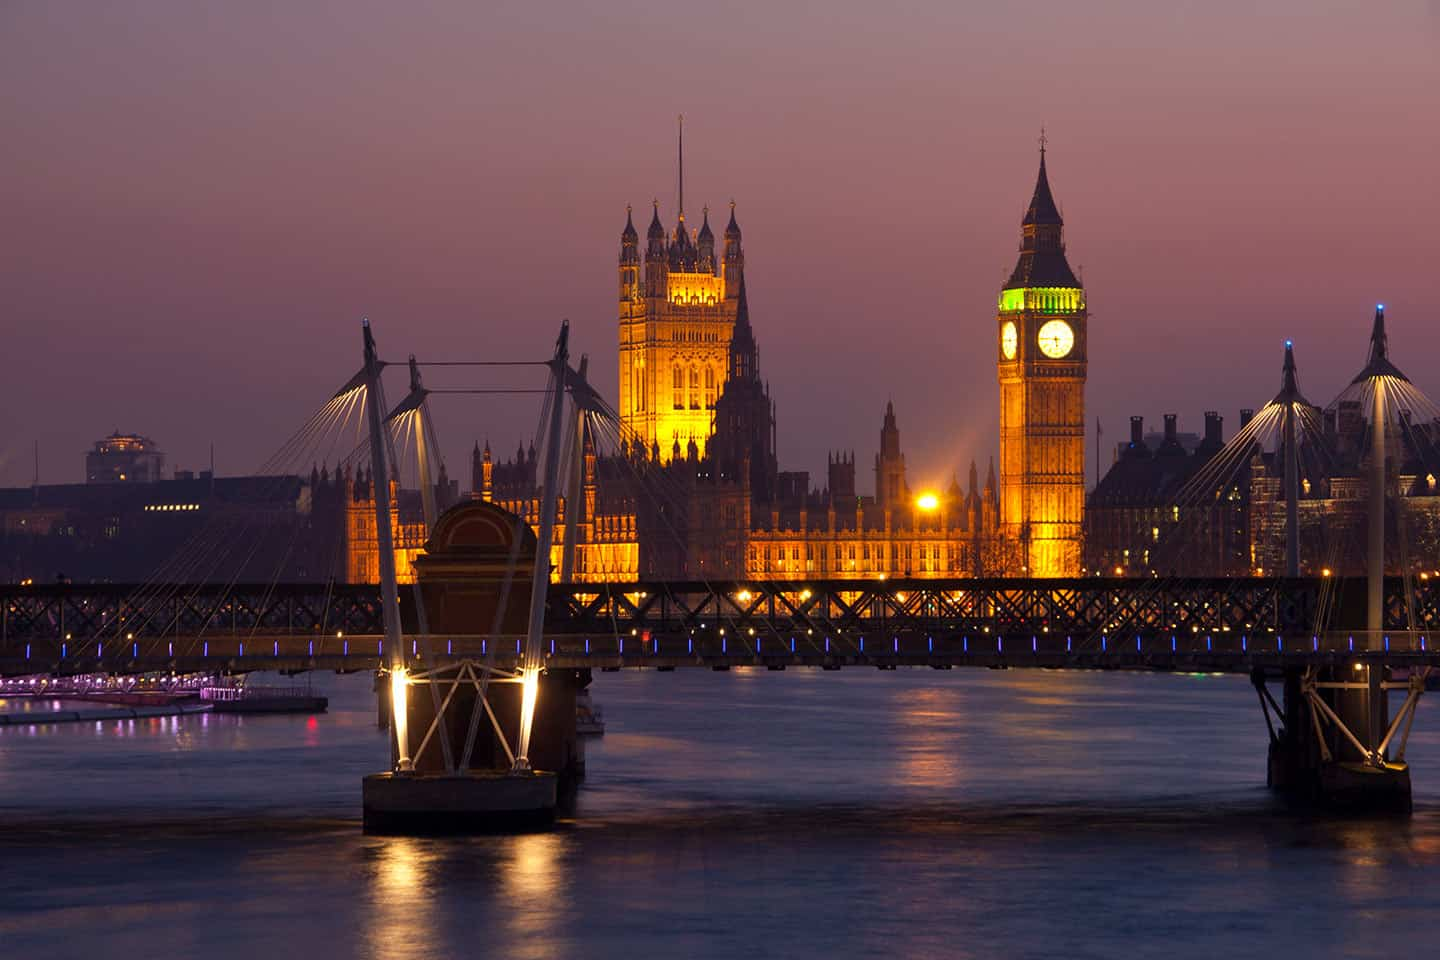 Image of the Hungerford and Golden Jubilee bridges  with the Houses of Parliament at dusk